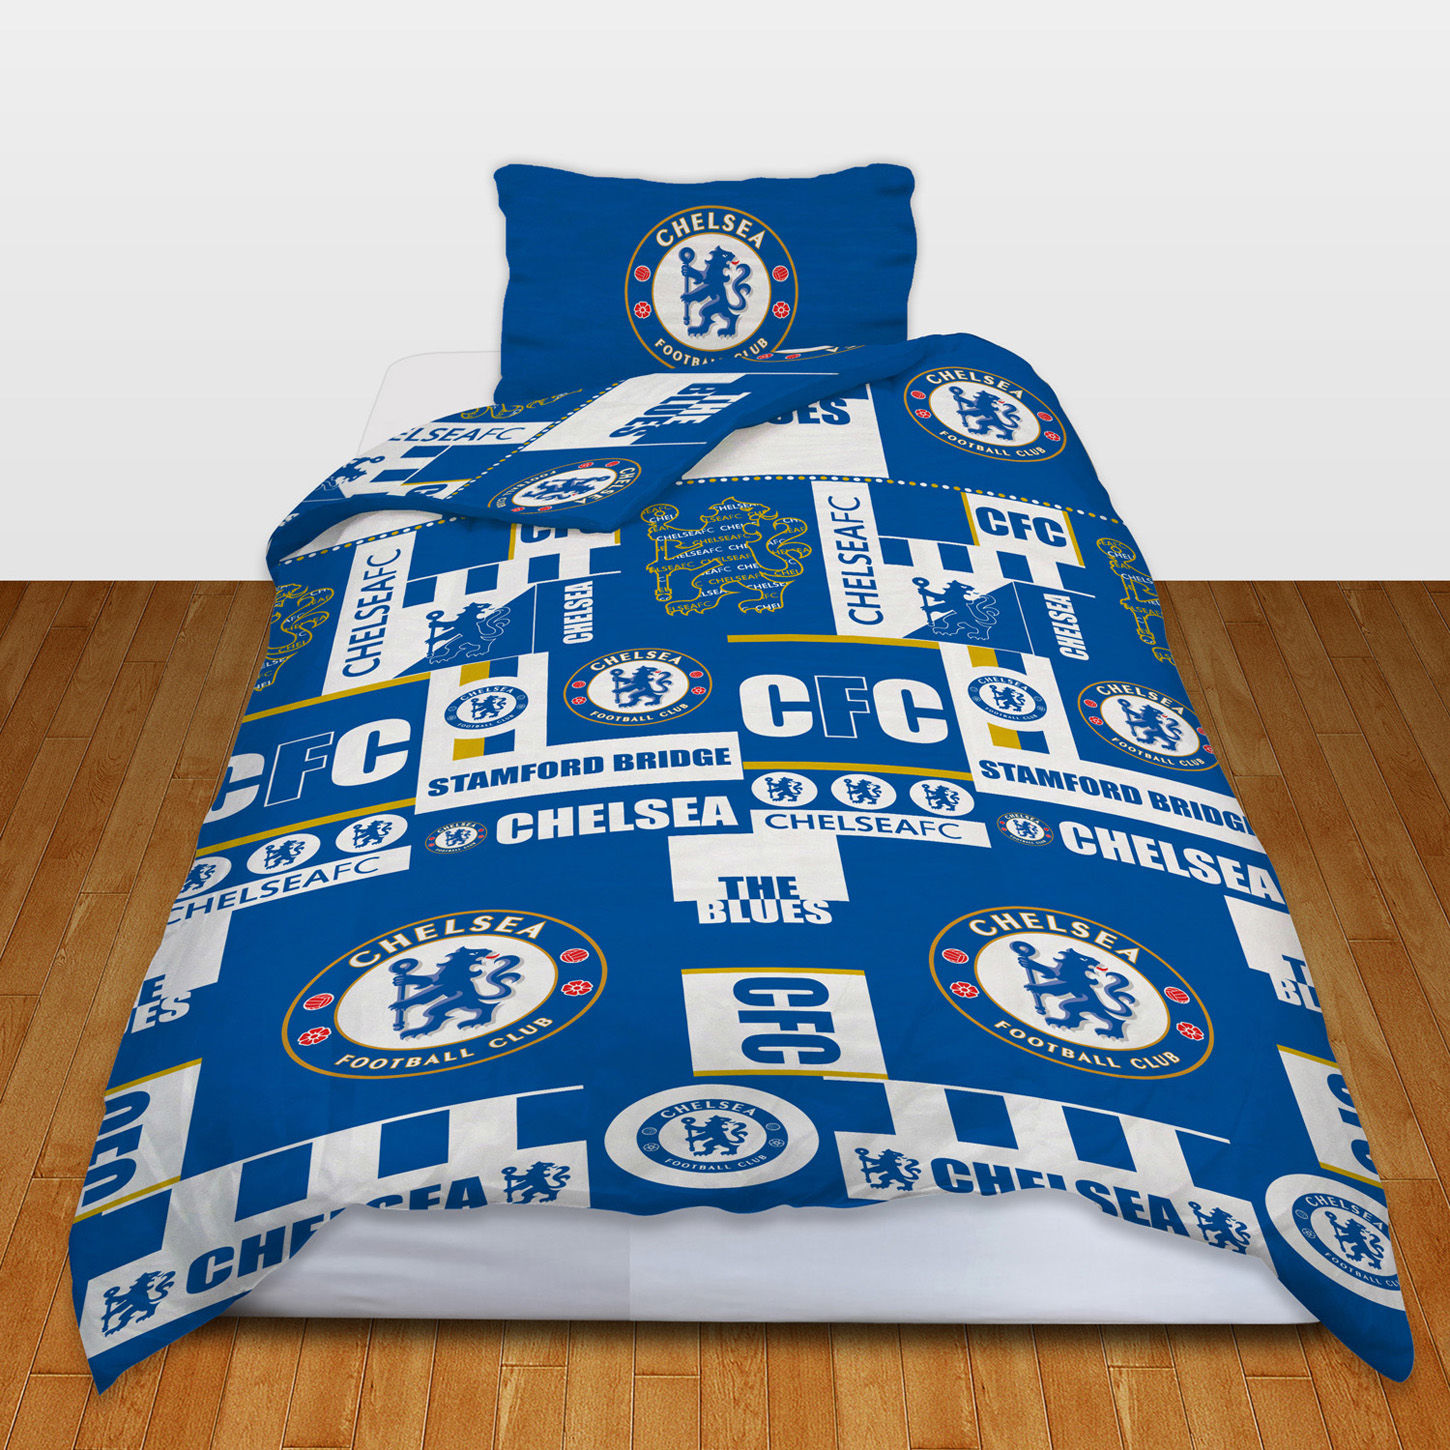 Chelsea Tag Duvet Cover Set - Single. Rotary Screen Print. 52% Polyester. 48% Cotton. Contains: 1 x Duvet cover 1 x Pillow Case Dimensions: Duvet Cover - approx. 135 x 200cm Pillow Case - approx. 50 x 75cm